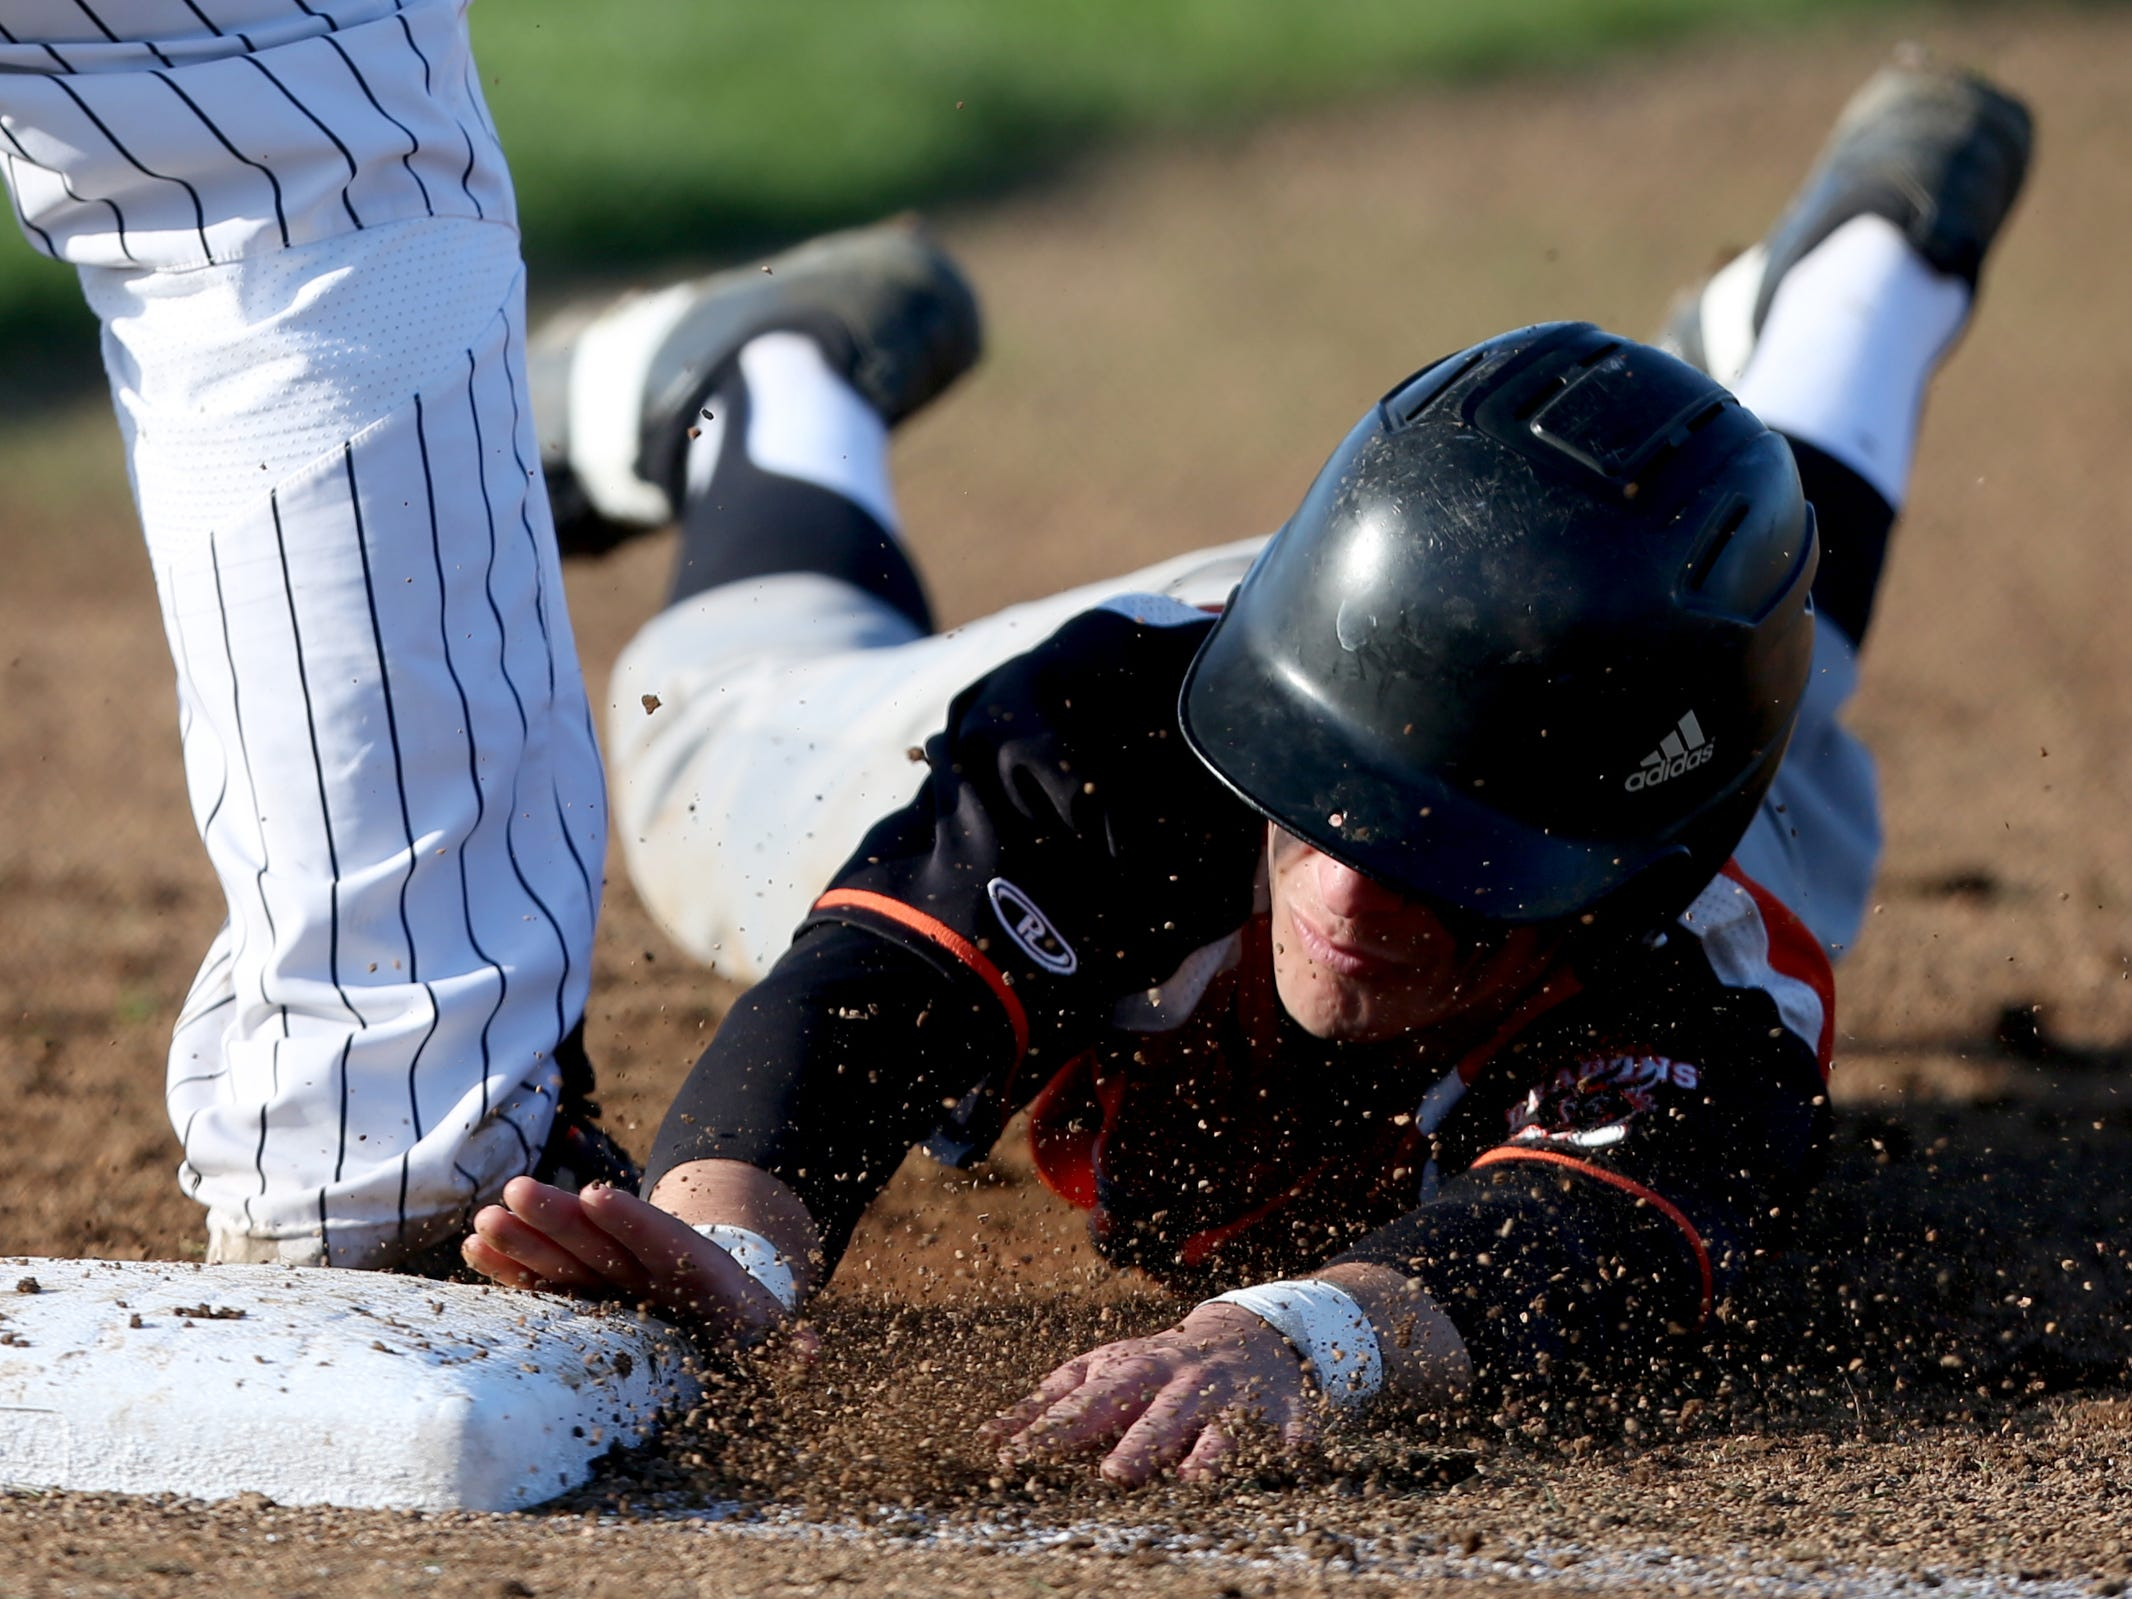 A Dallas player is safe at first after being caught trying to steal in the Dallas vs. North Salem baseball game in Salem on April 12, 2019.